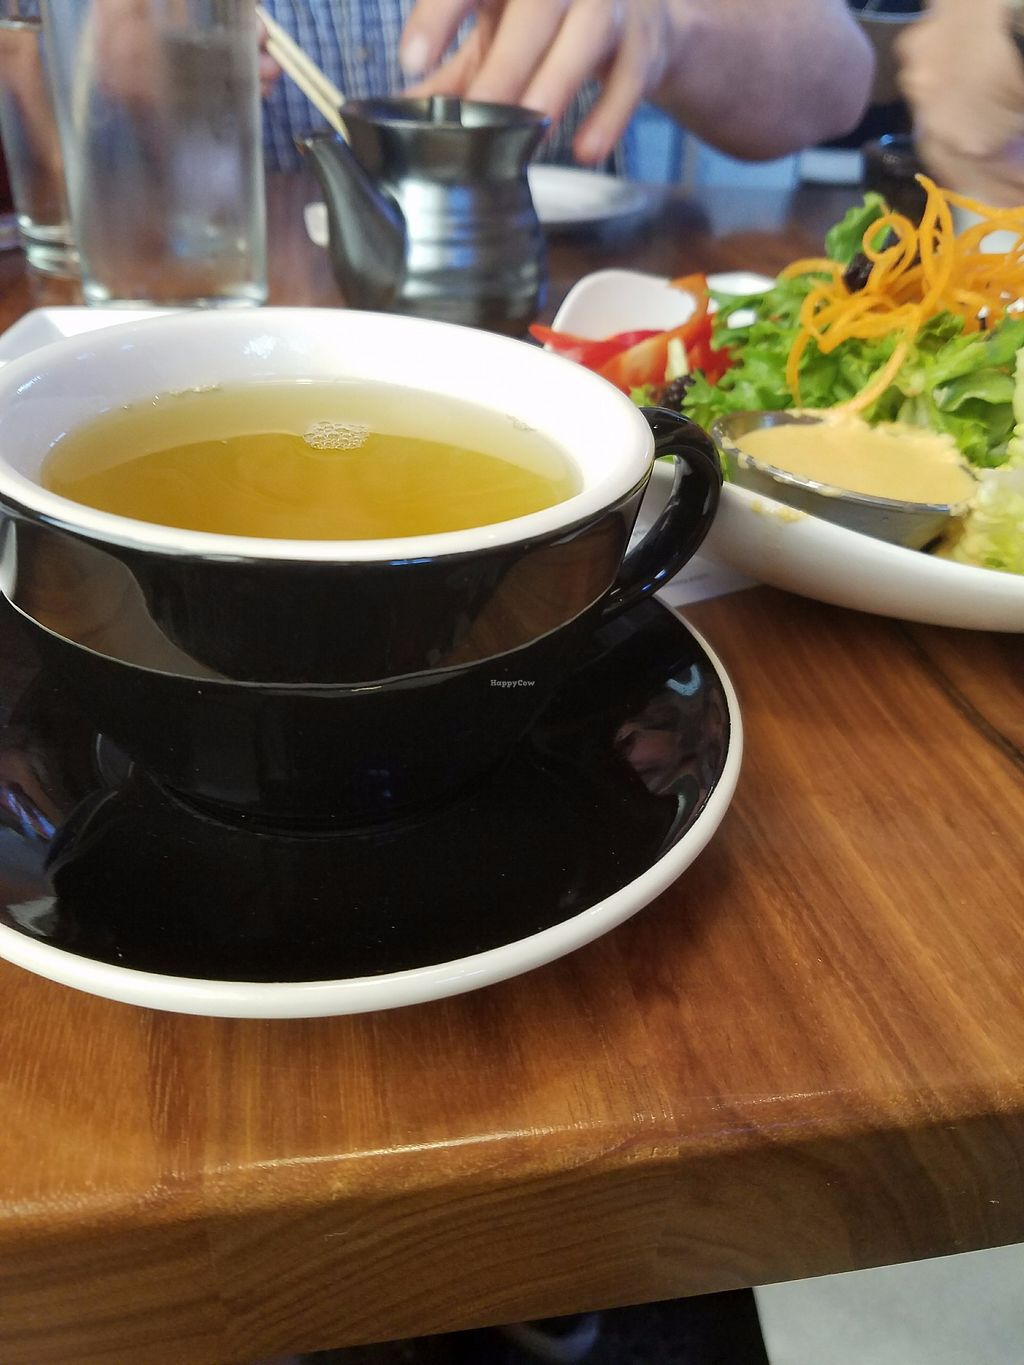 """Photo of Maru Sushi & Grill  by <a href=""""/members/profile/MerryRose"""">MerryRose</a> <br/>house blend green tea <br/> August 30, 2017  - <a href='/contact/abuse/image/99941/299146'>Report</a>"""